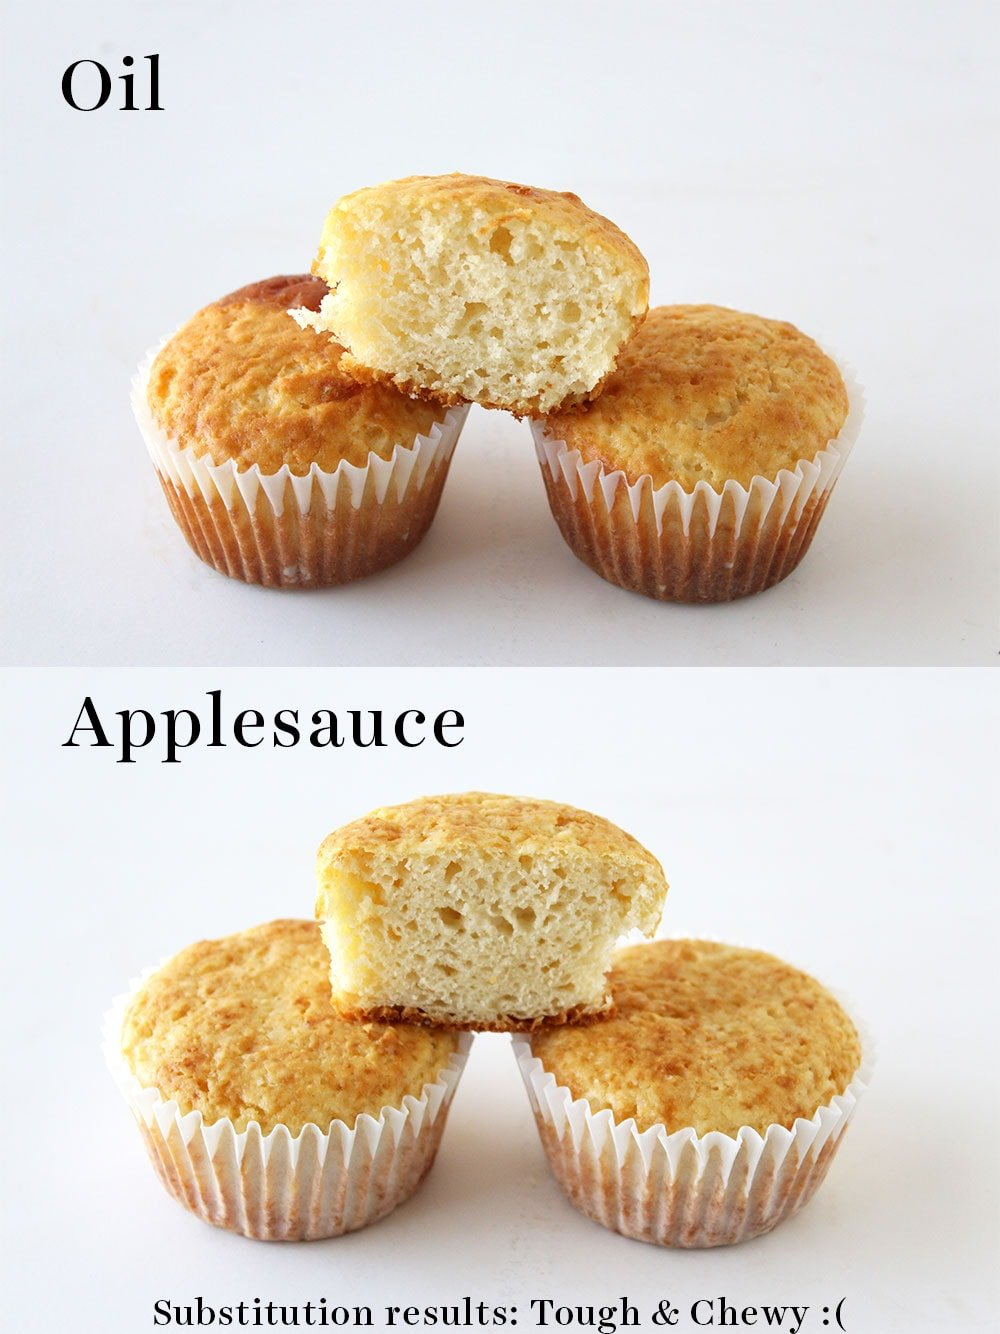 Muffins made with oil vs. muffins made with applesauce. Applesauce muffins are tough and chewy in texture